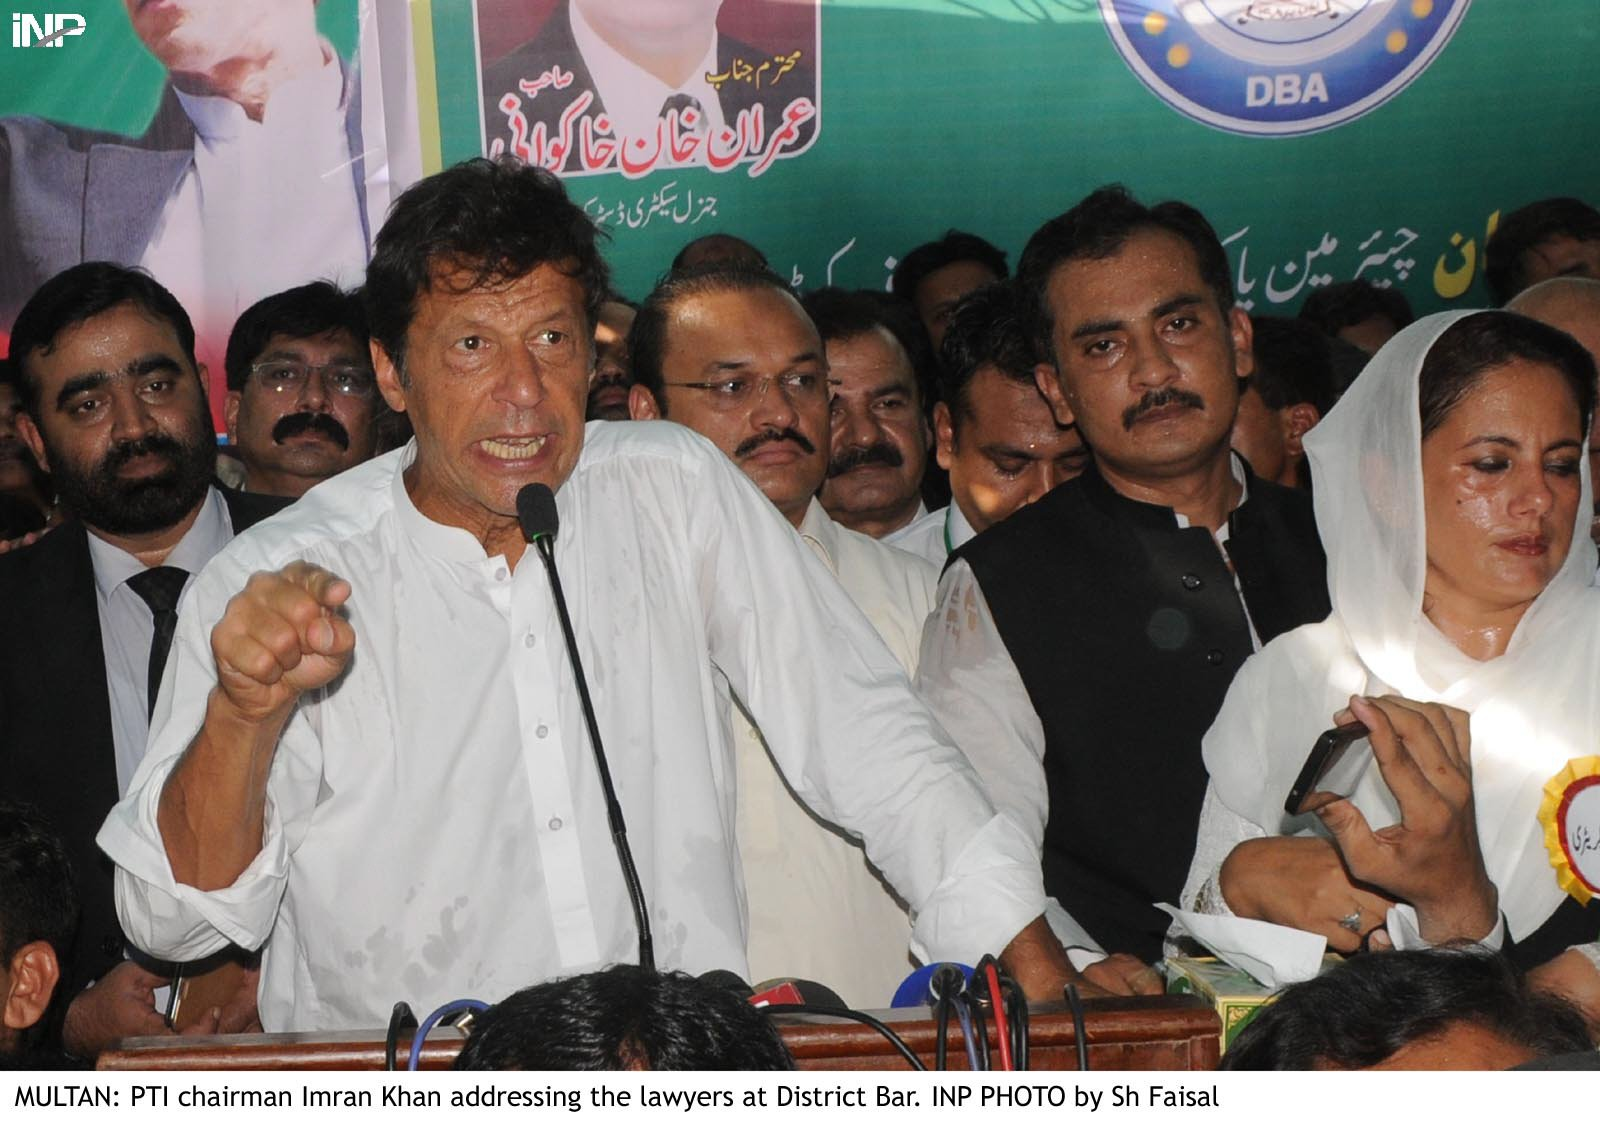 Only judiciary can restrain the rulers from their corrupt practices, PTI chairman addresses IHC bar. PHOTO: INP/FILE